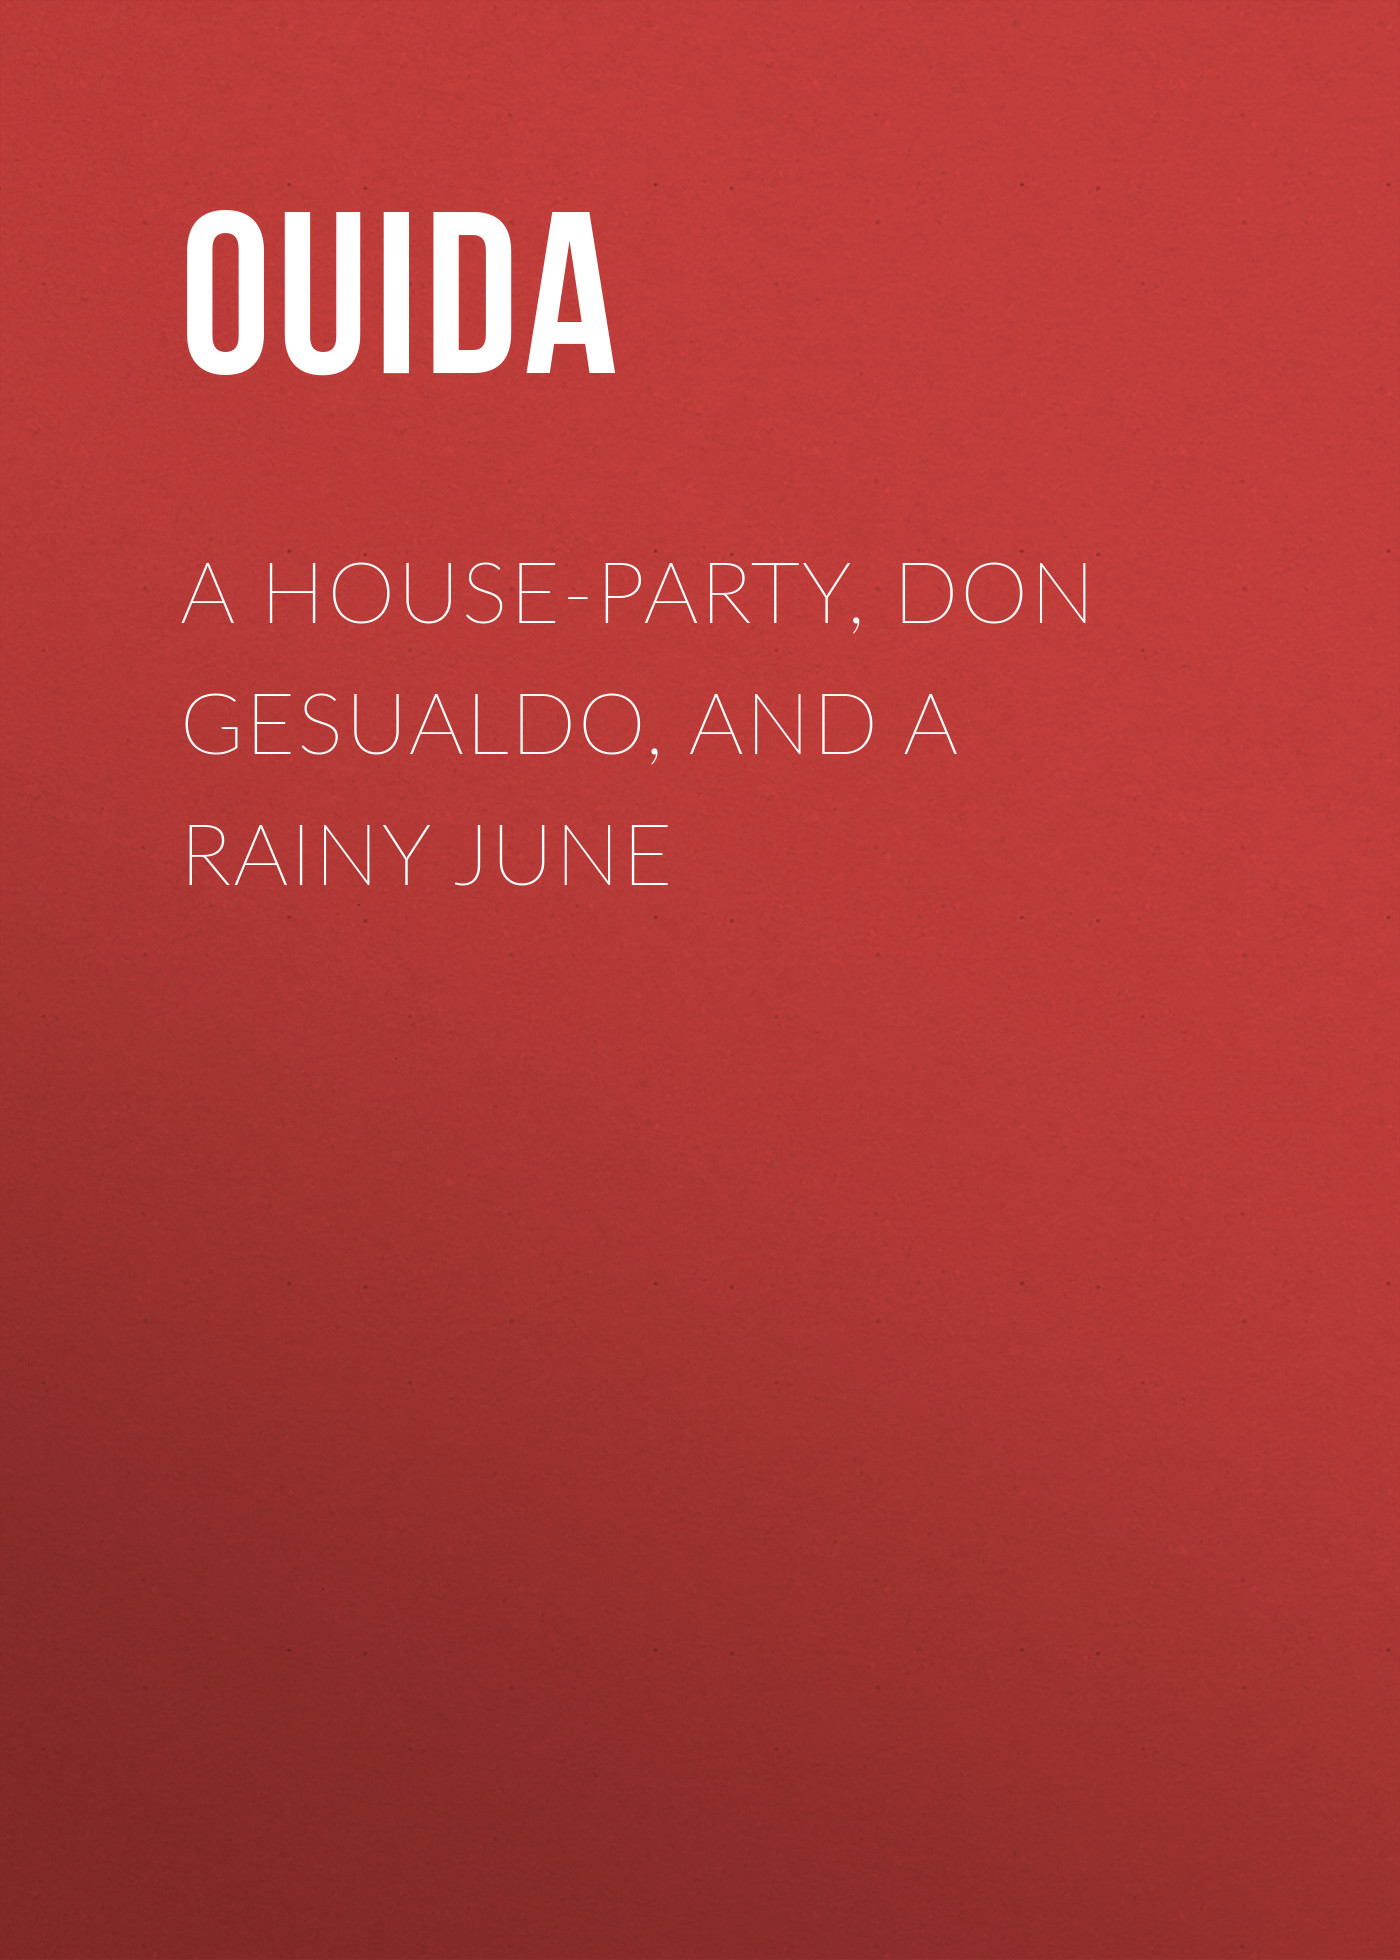 Ouida A House-Party, Don Gesualdo, and A Rainy June